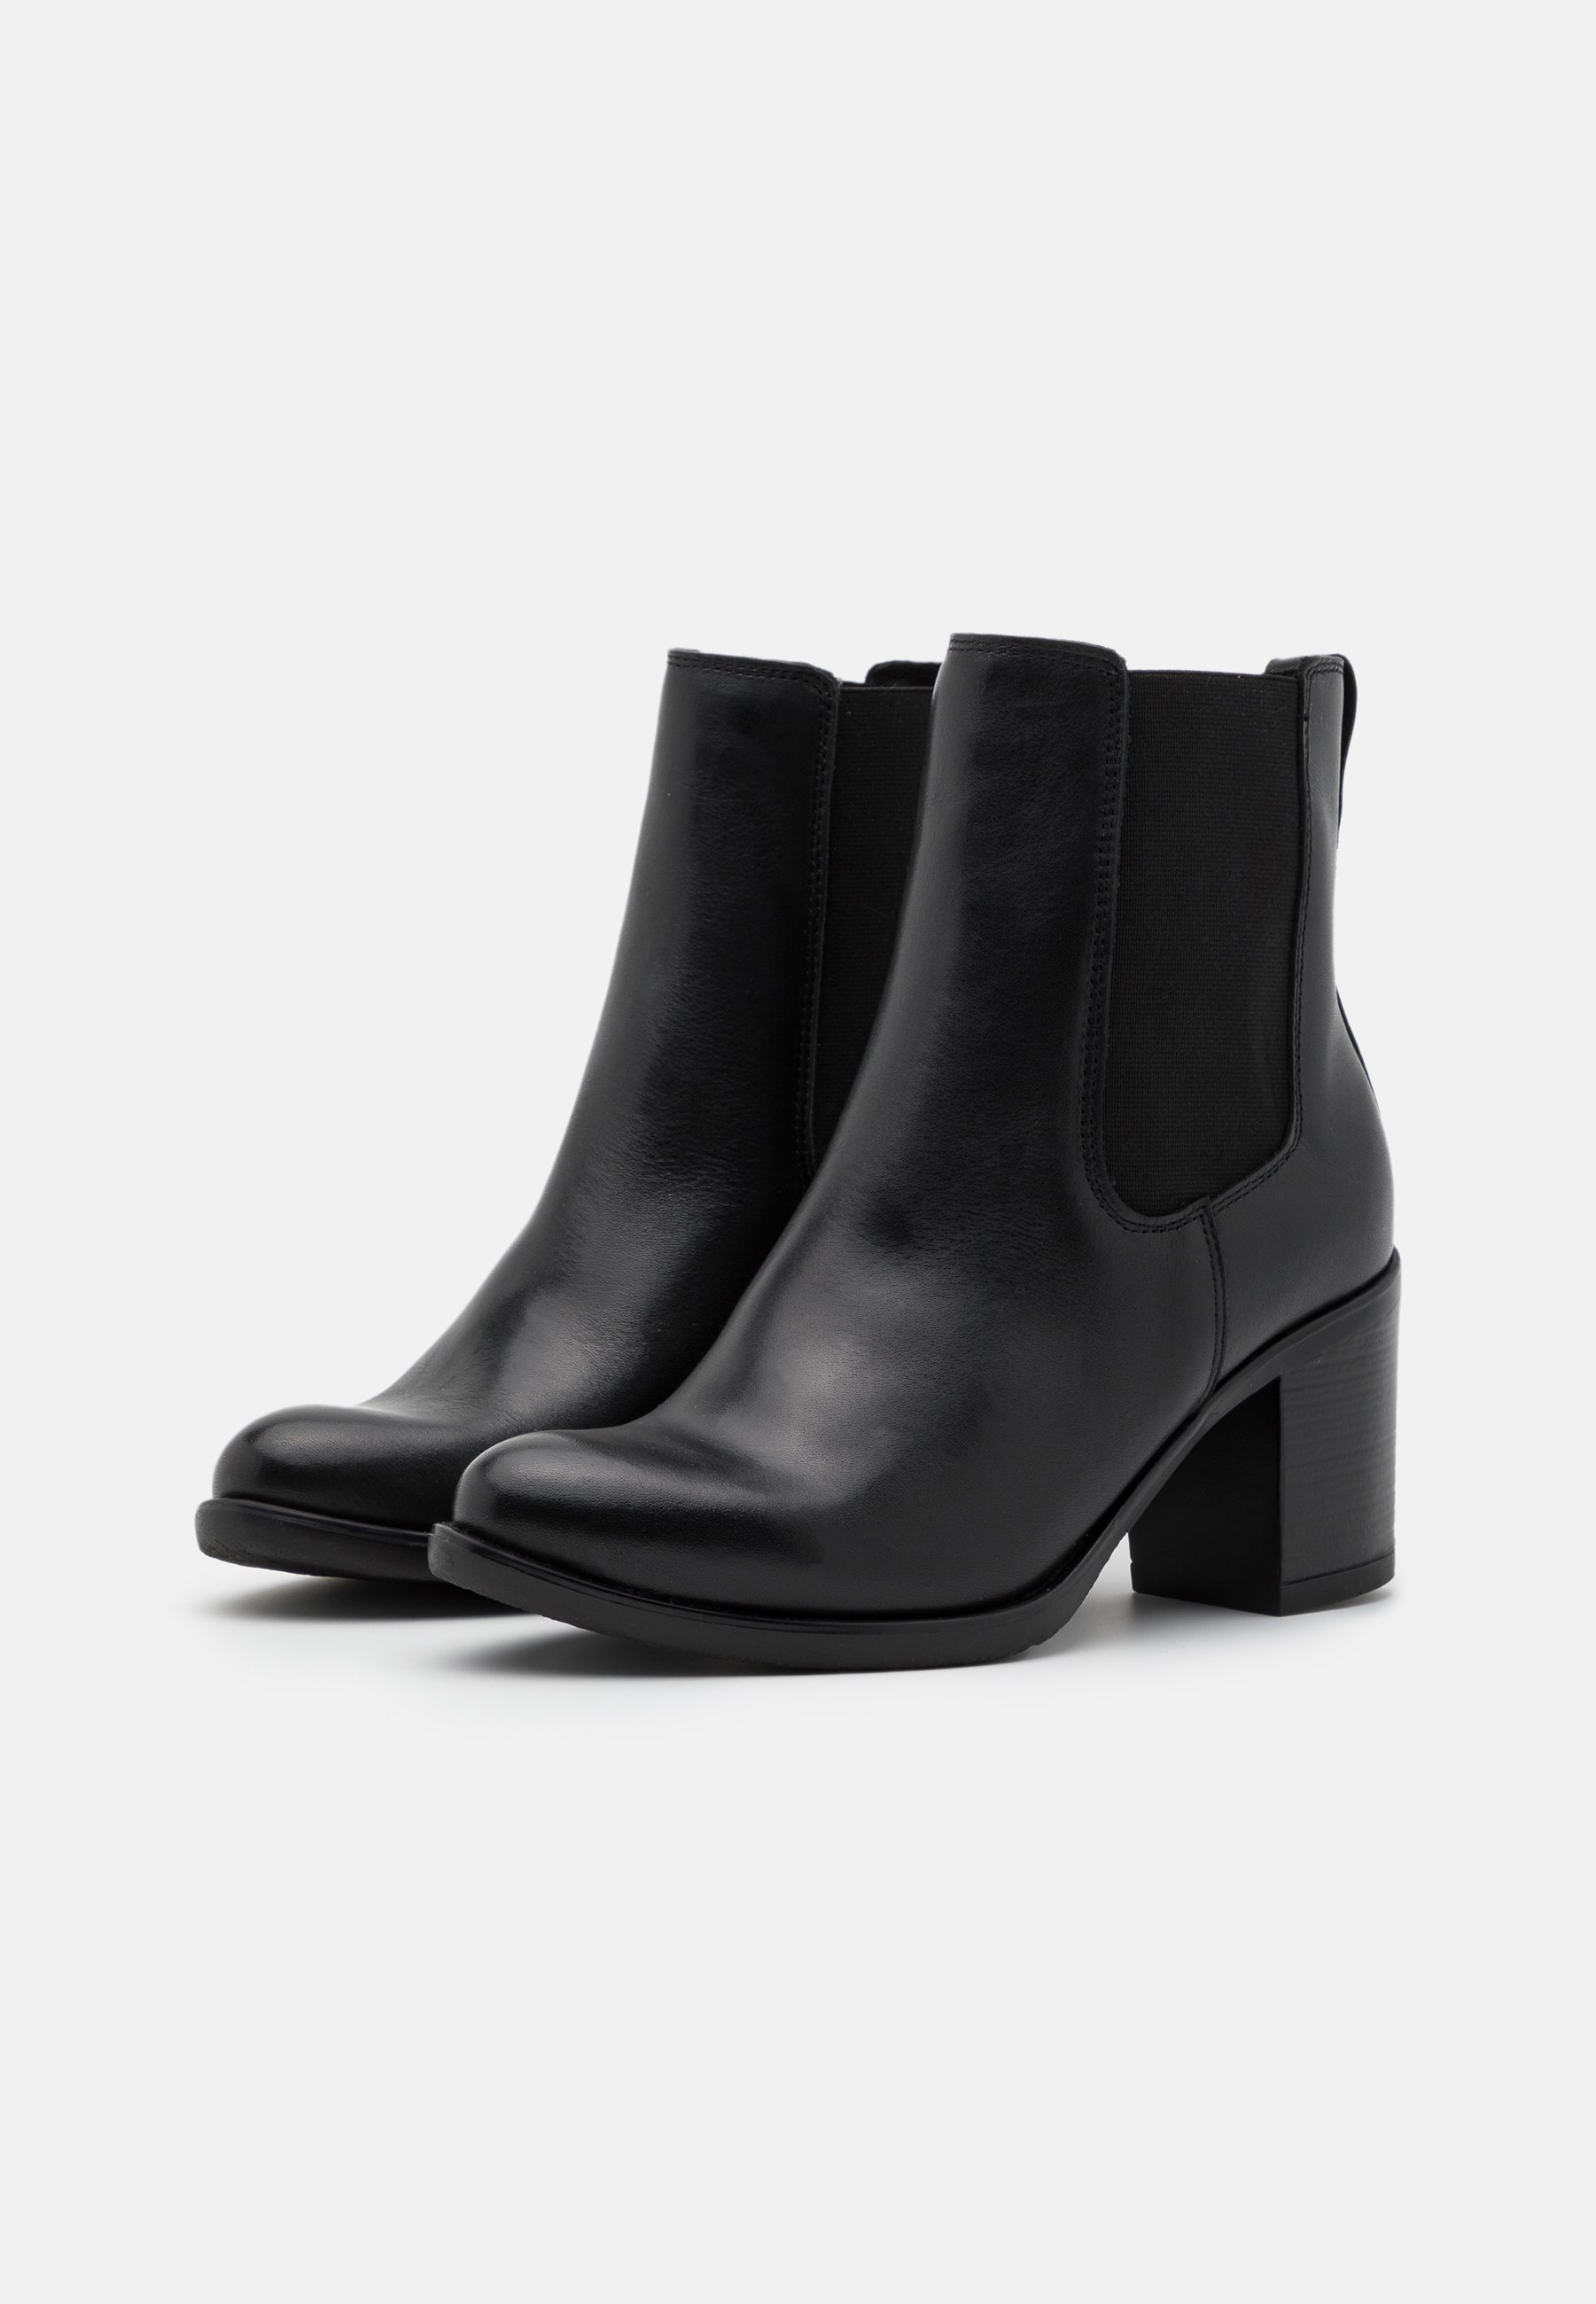 Anna Field LEATHER Stiefelette black/schwarz